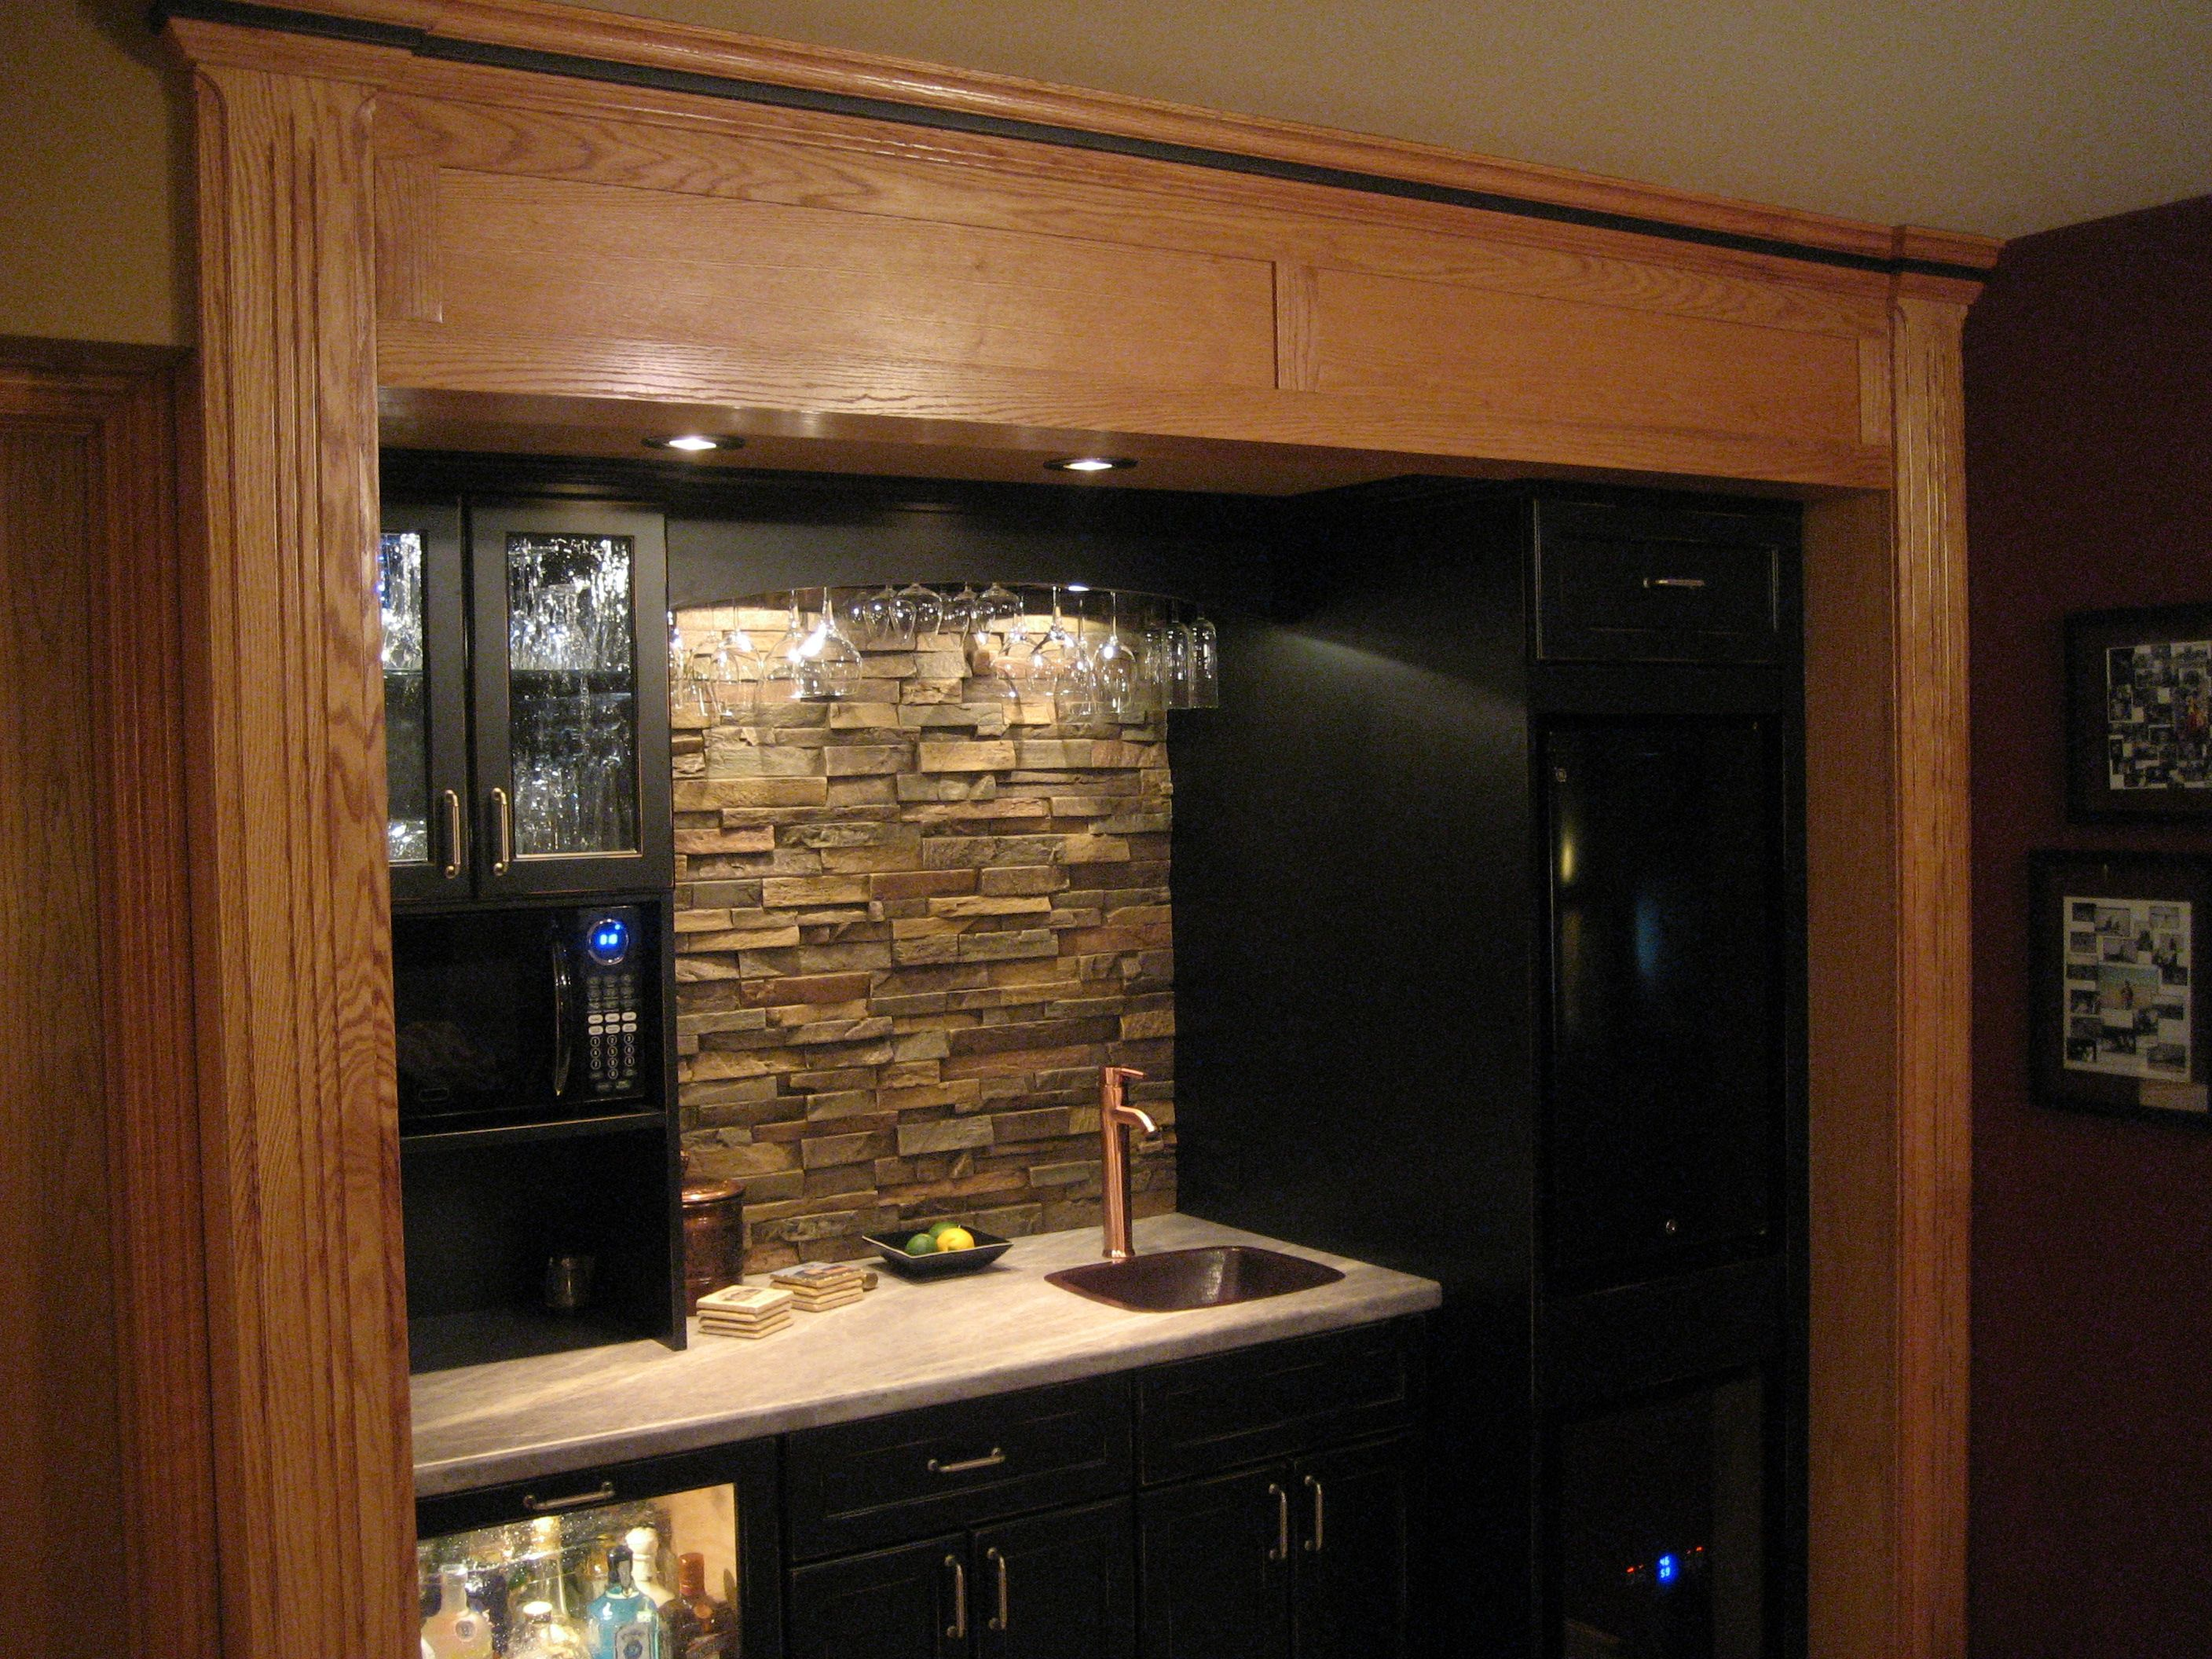 stone backsplash ideas for kitchen | adding stone veneer into the